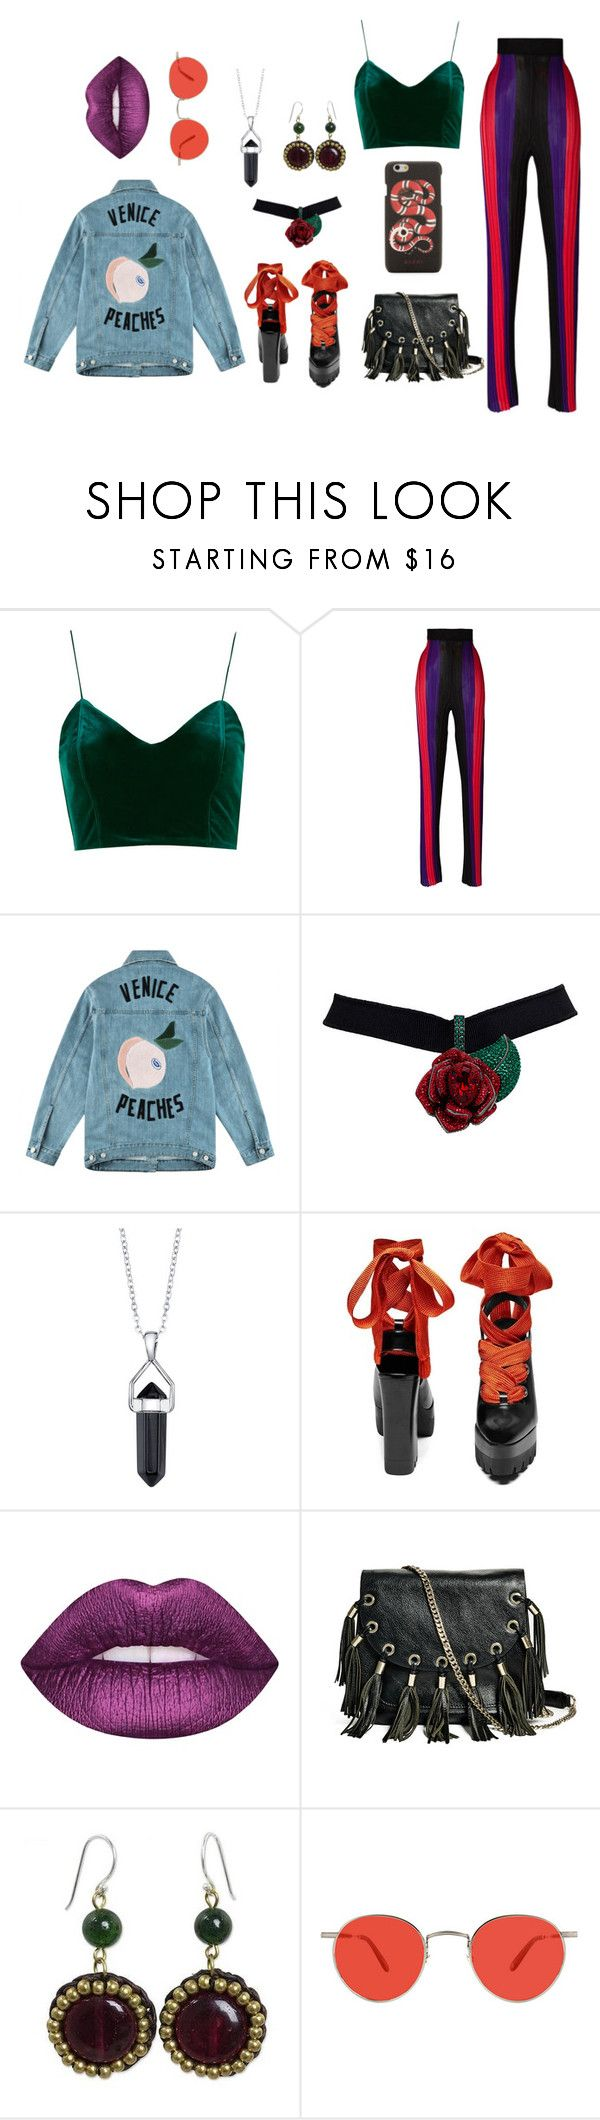 """70's babe"" by ytopia on Polyvore featuring мода, Balmain, Être Cécile, Bridge Jewelry, Lime Crime, GUESS by Marciano, NOVICA, Garrett Leight и Gucci"